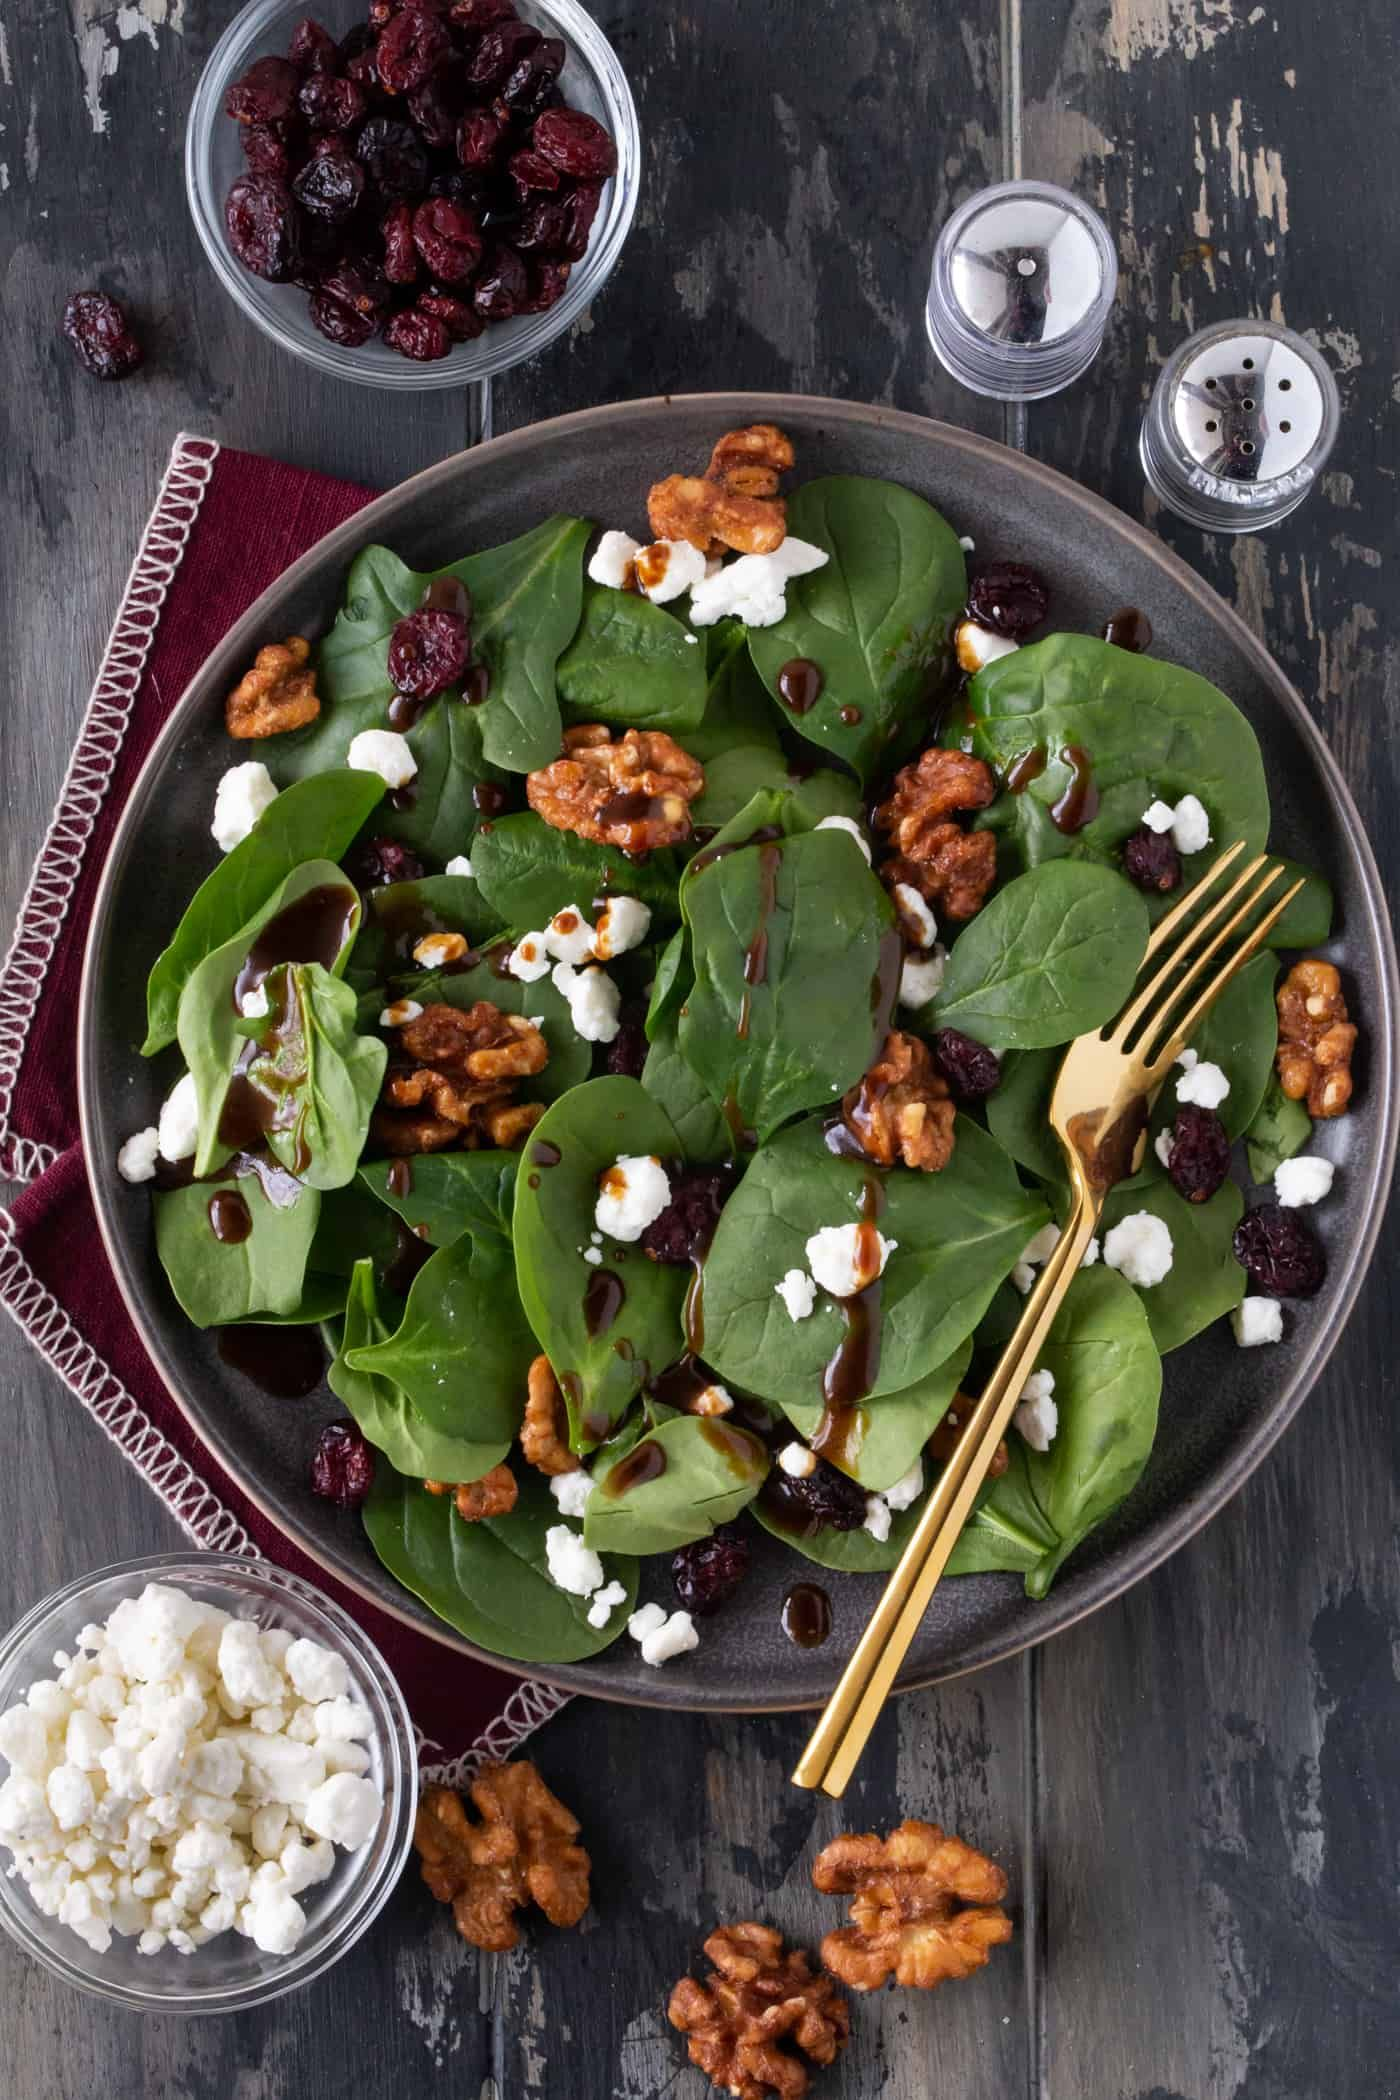 Spinach Salad With Goat Cheese Craisins And A Balsamic